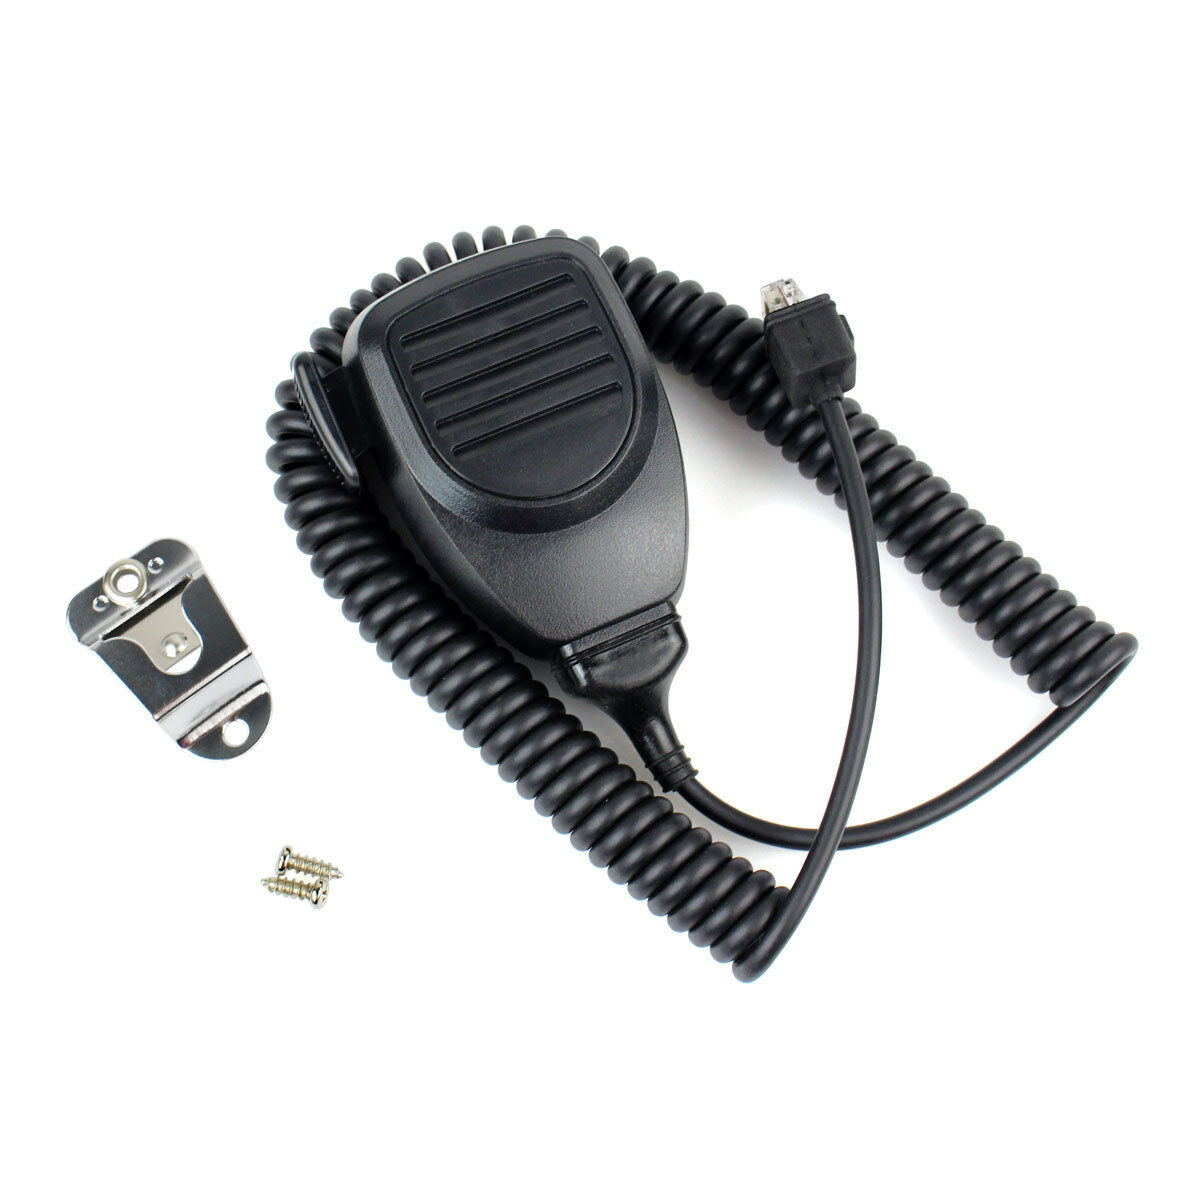 8Pin Speaker Microphone Mic For Kenwood KMC-30 TK-760 TK768 TK868 TK-980 TM-271A TM-461A TM-471A TK-768G TK-868G HAM Radio